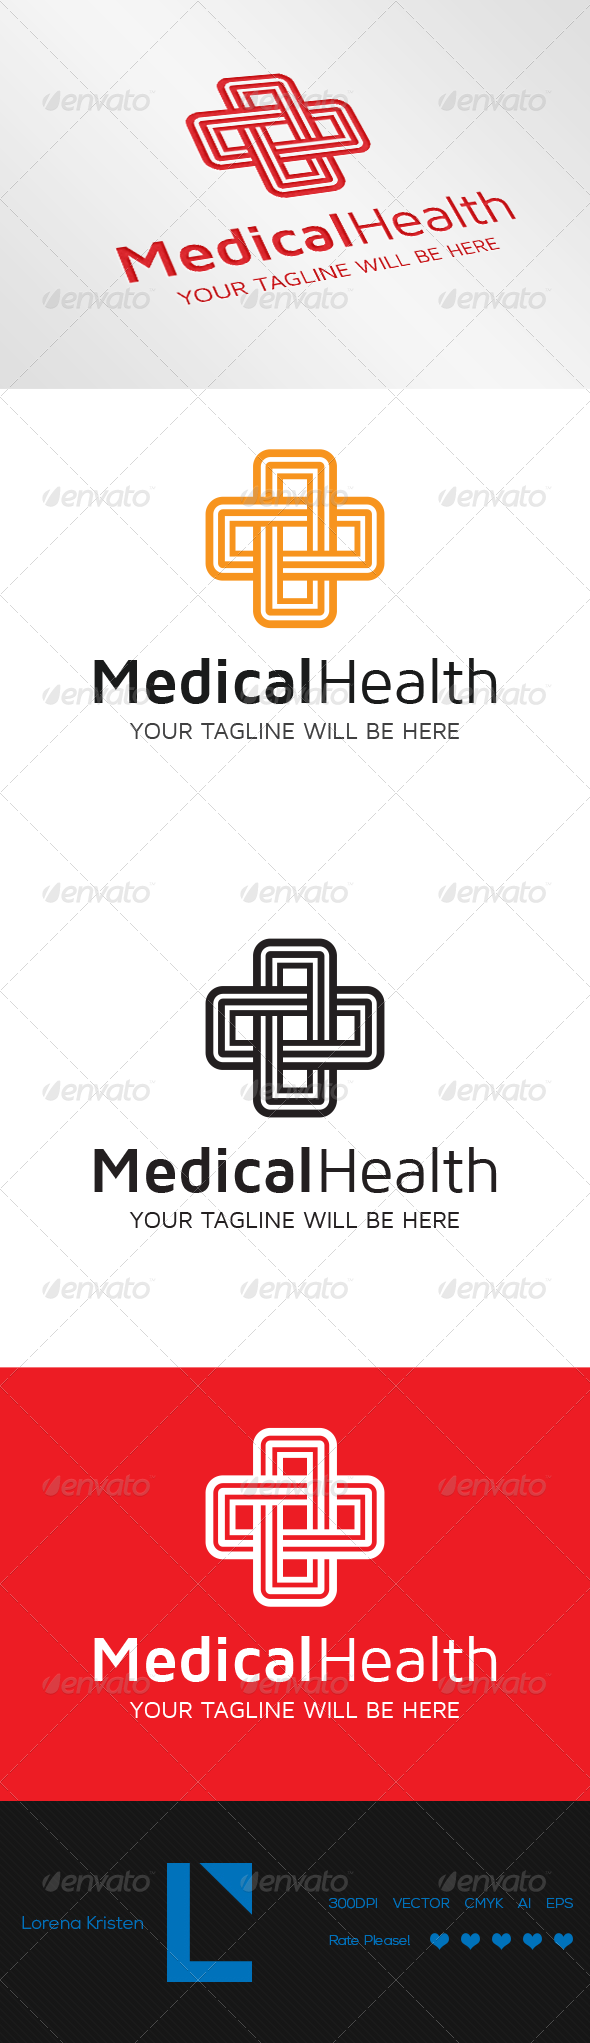 GraphicRiver Medical Health 6867360